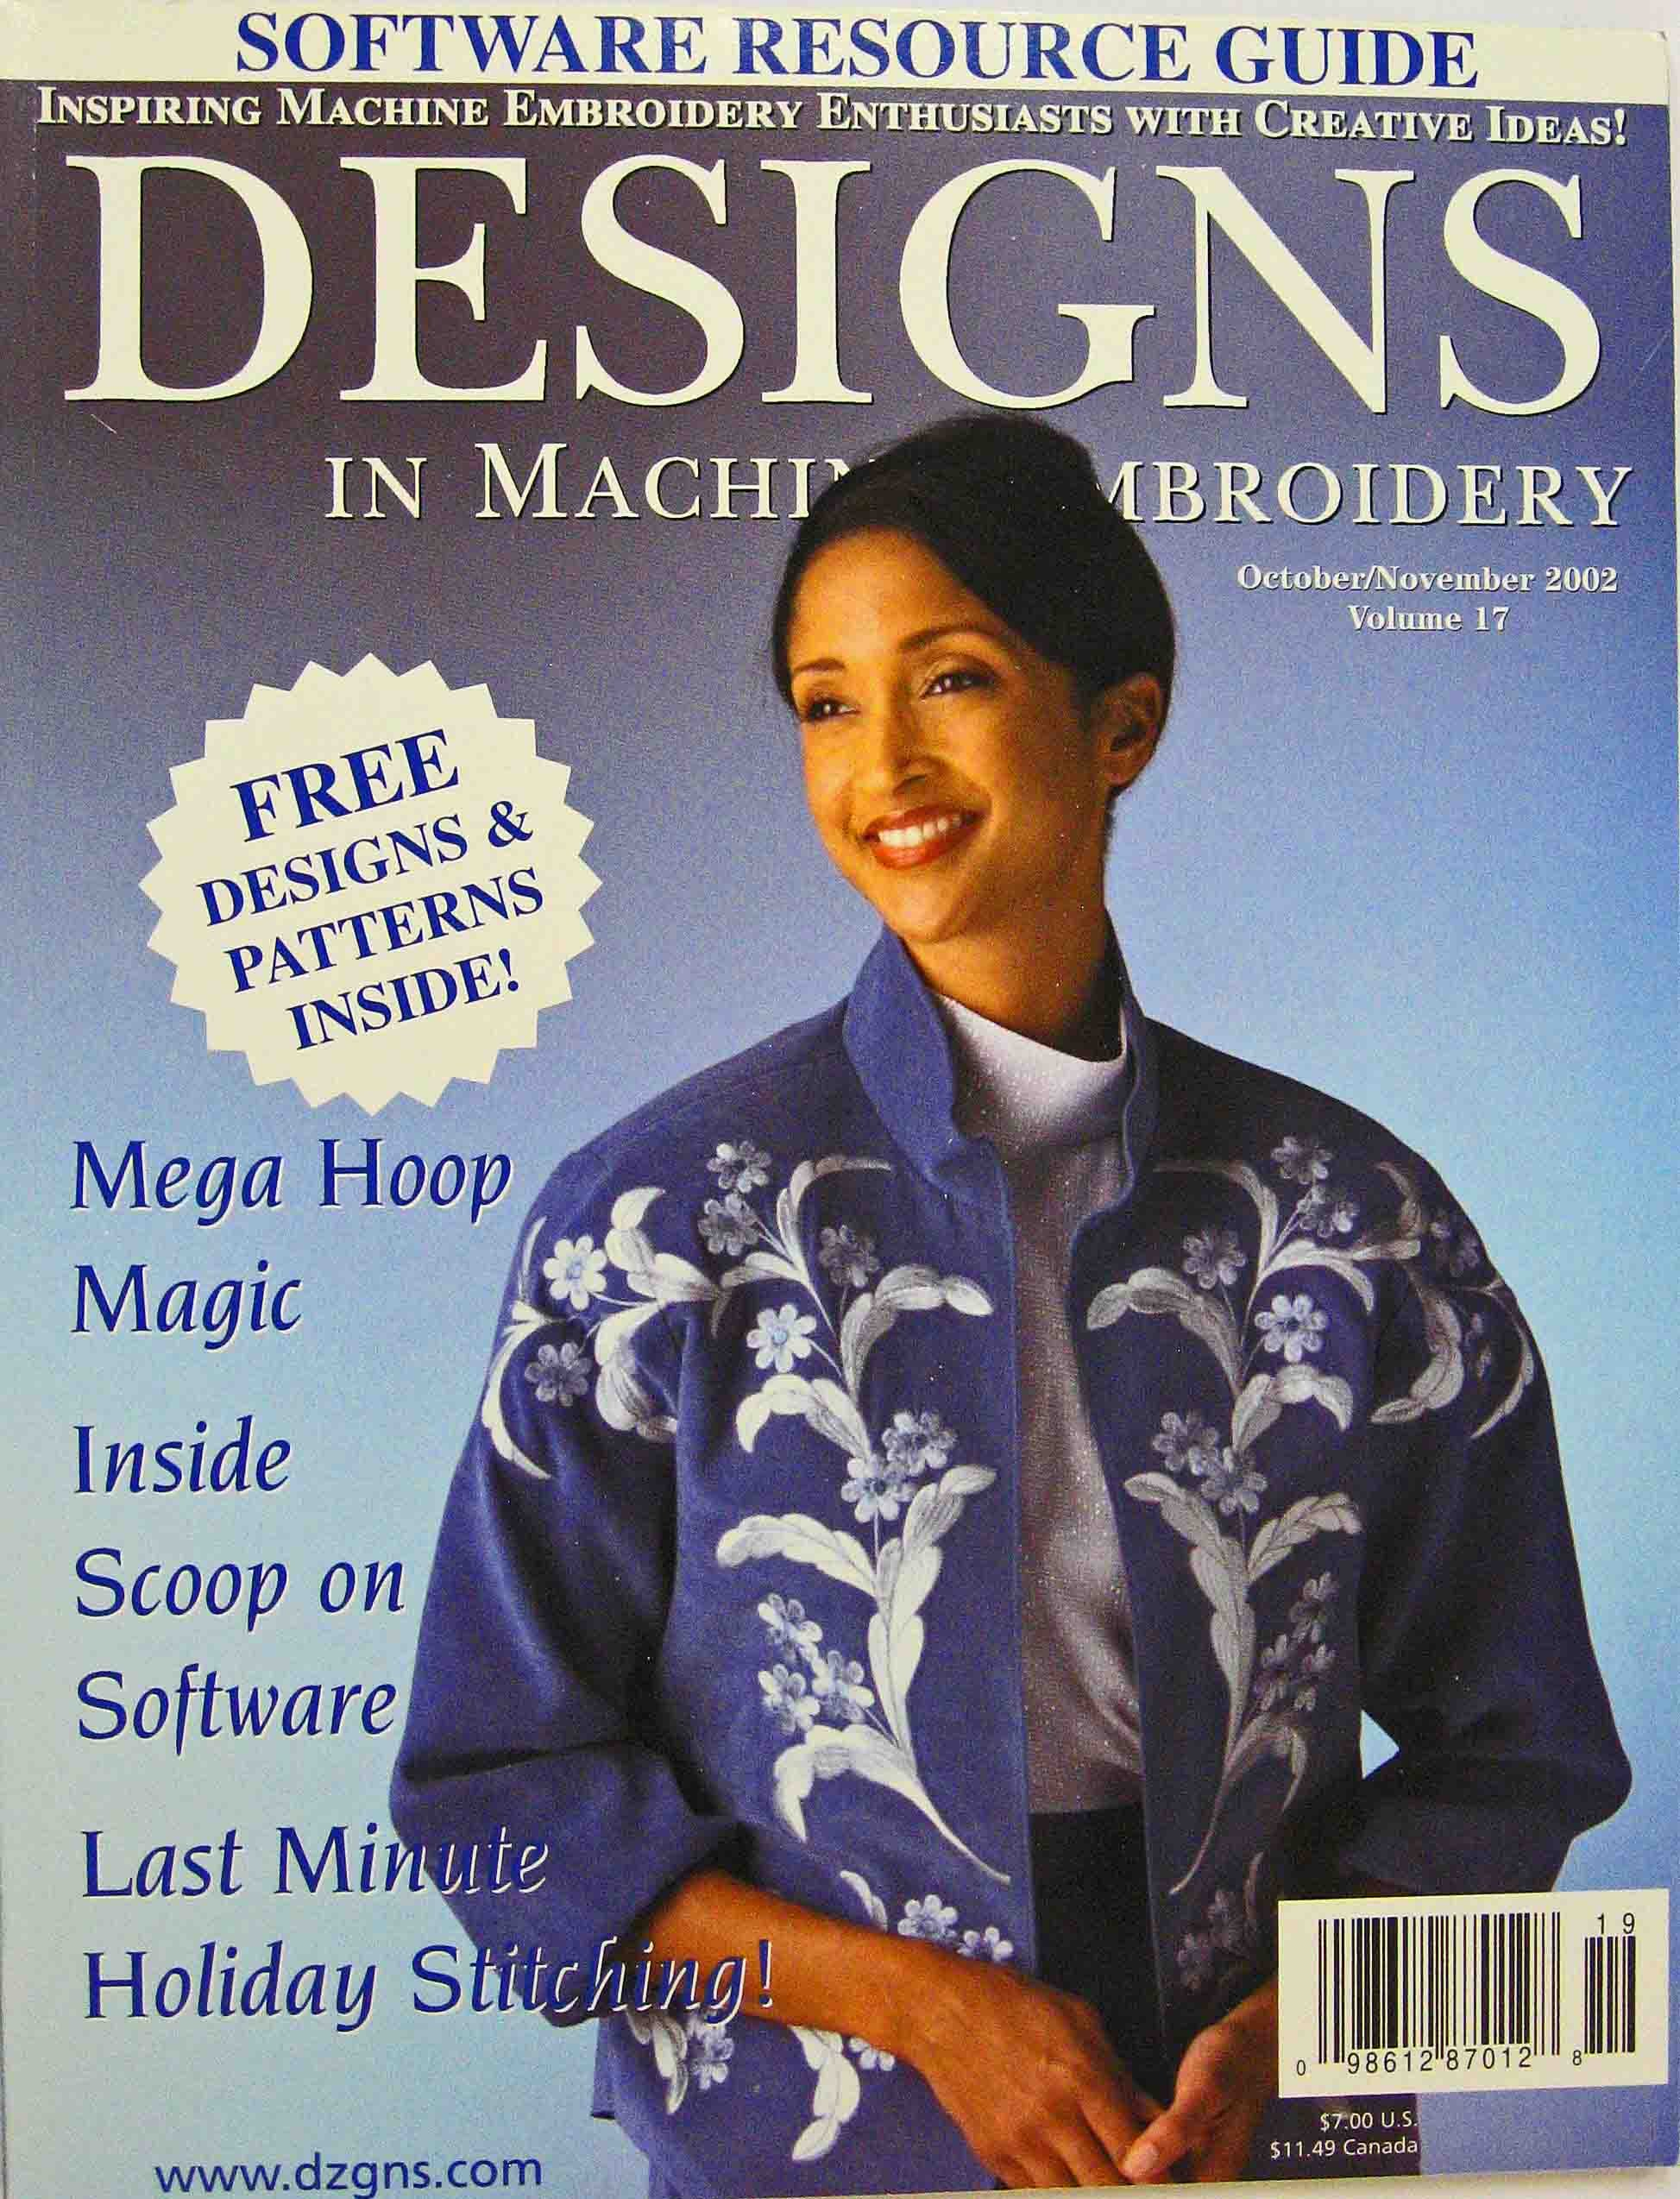 Designs In Machine Embroidery, October/November 2002, Vol